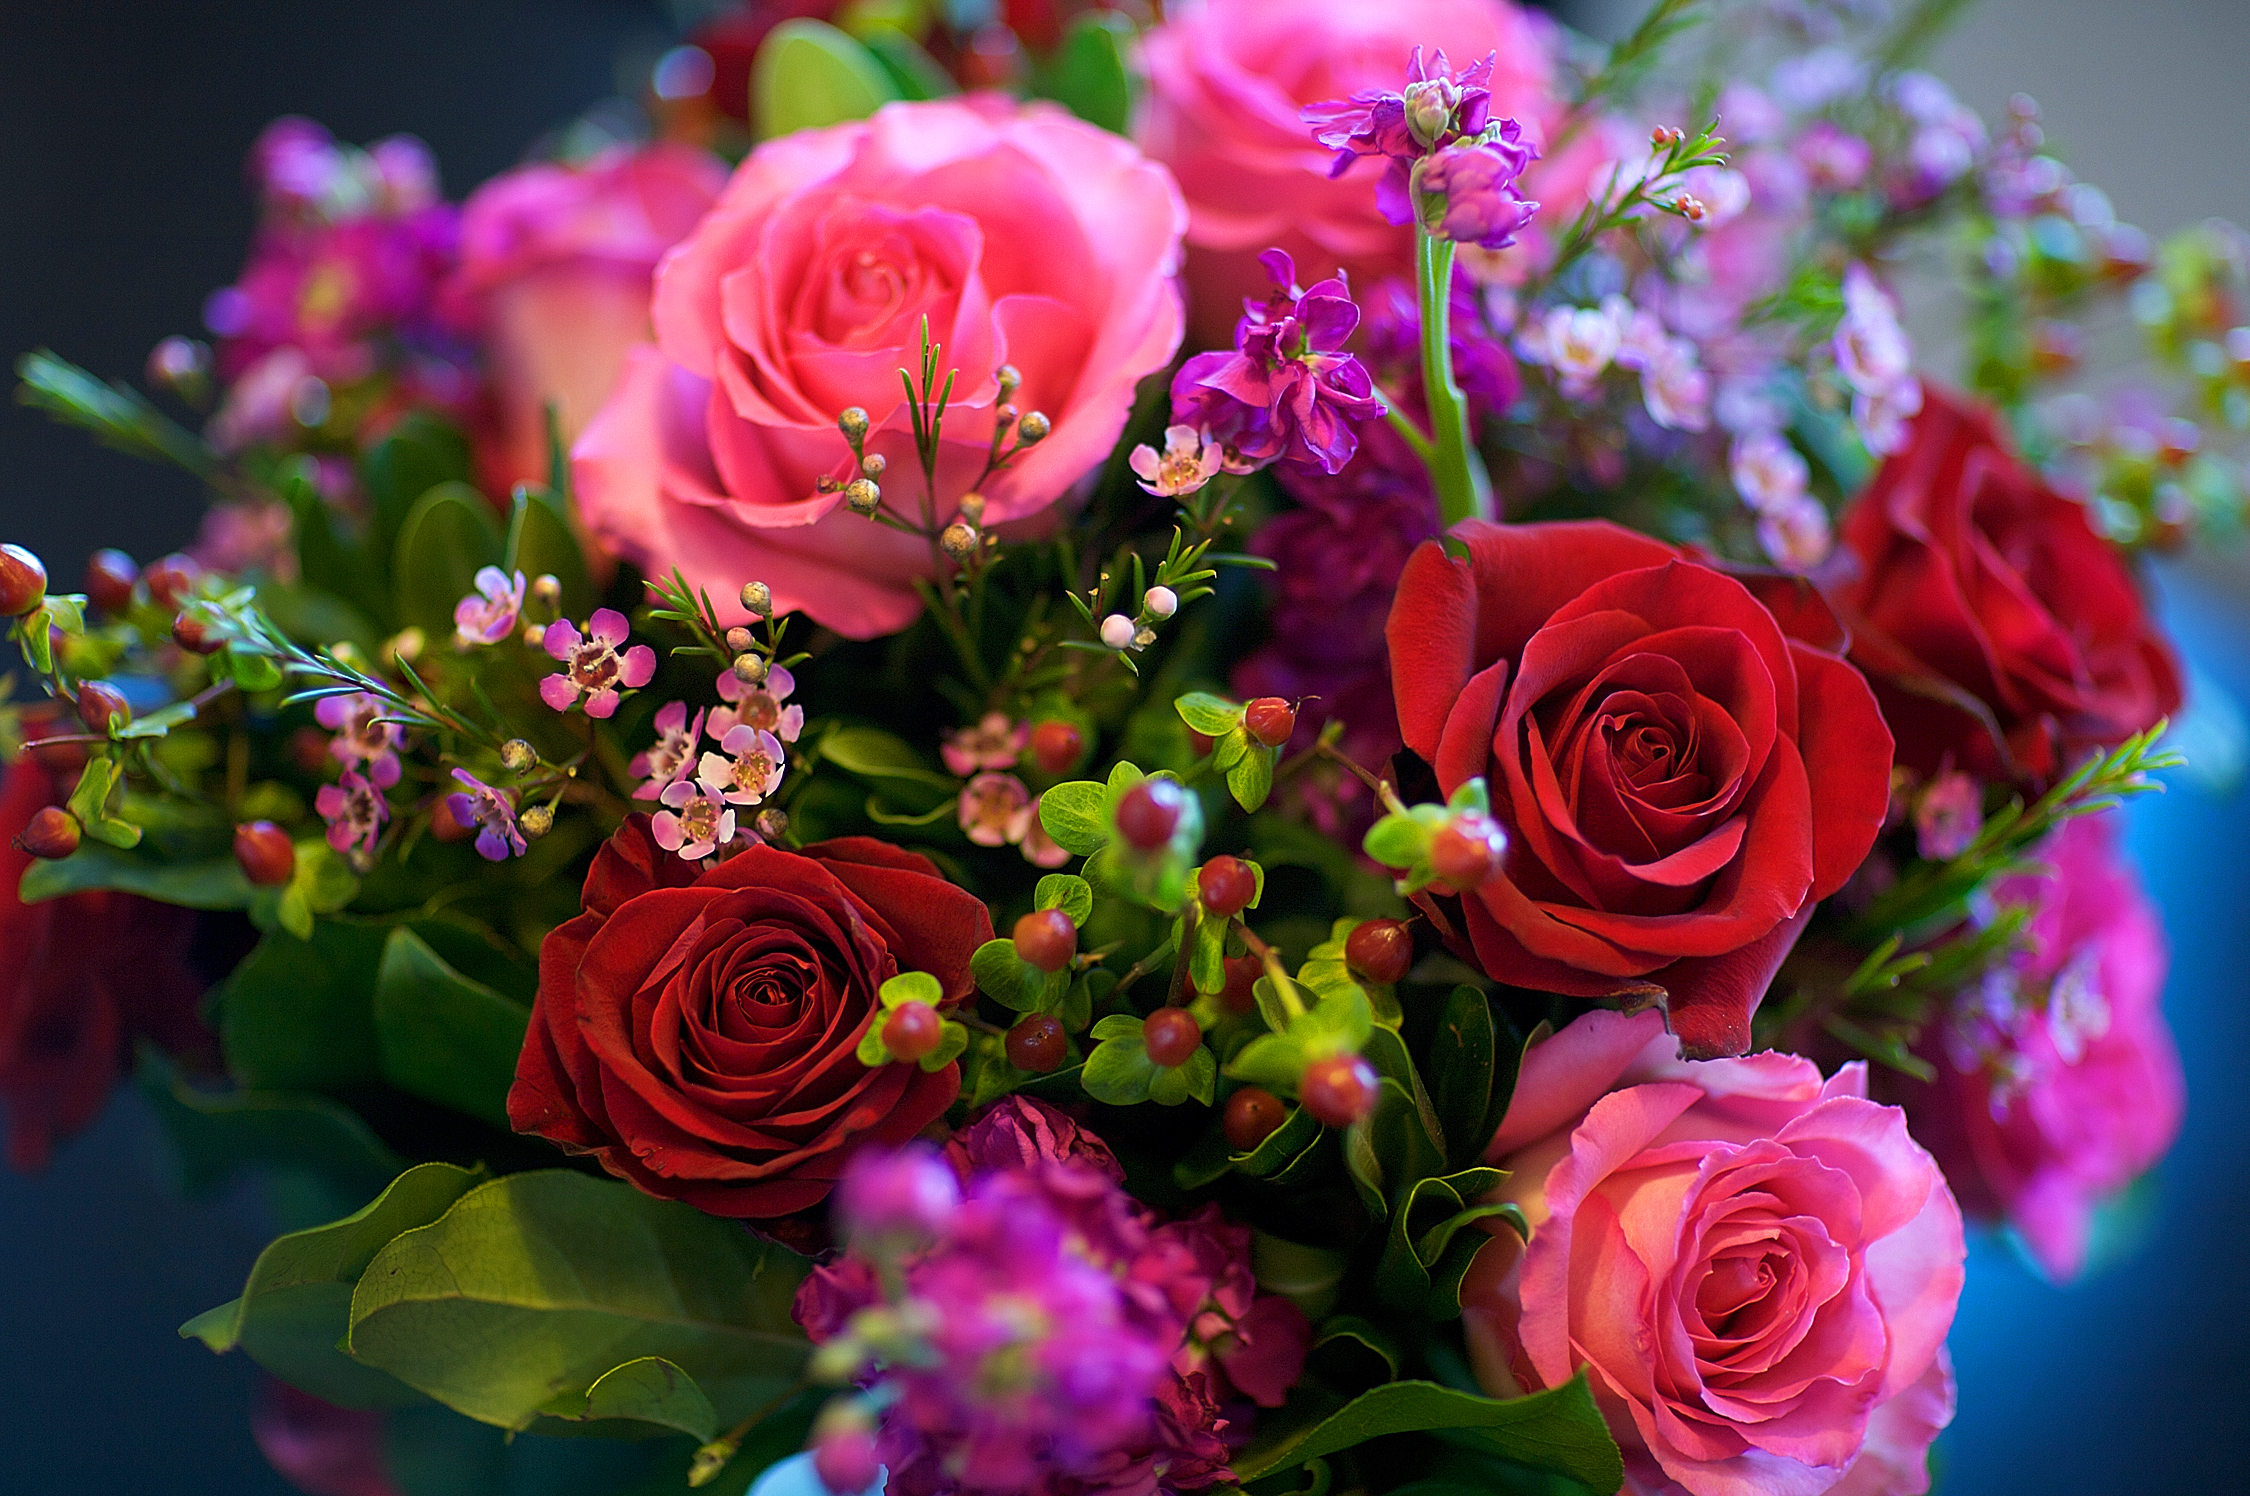 Roses_Bouquets_483657.jpg